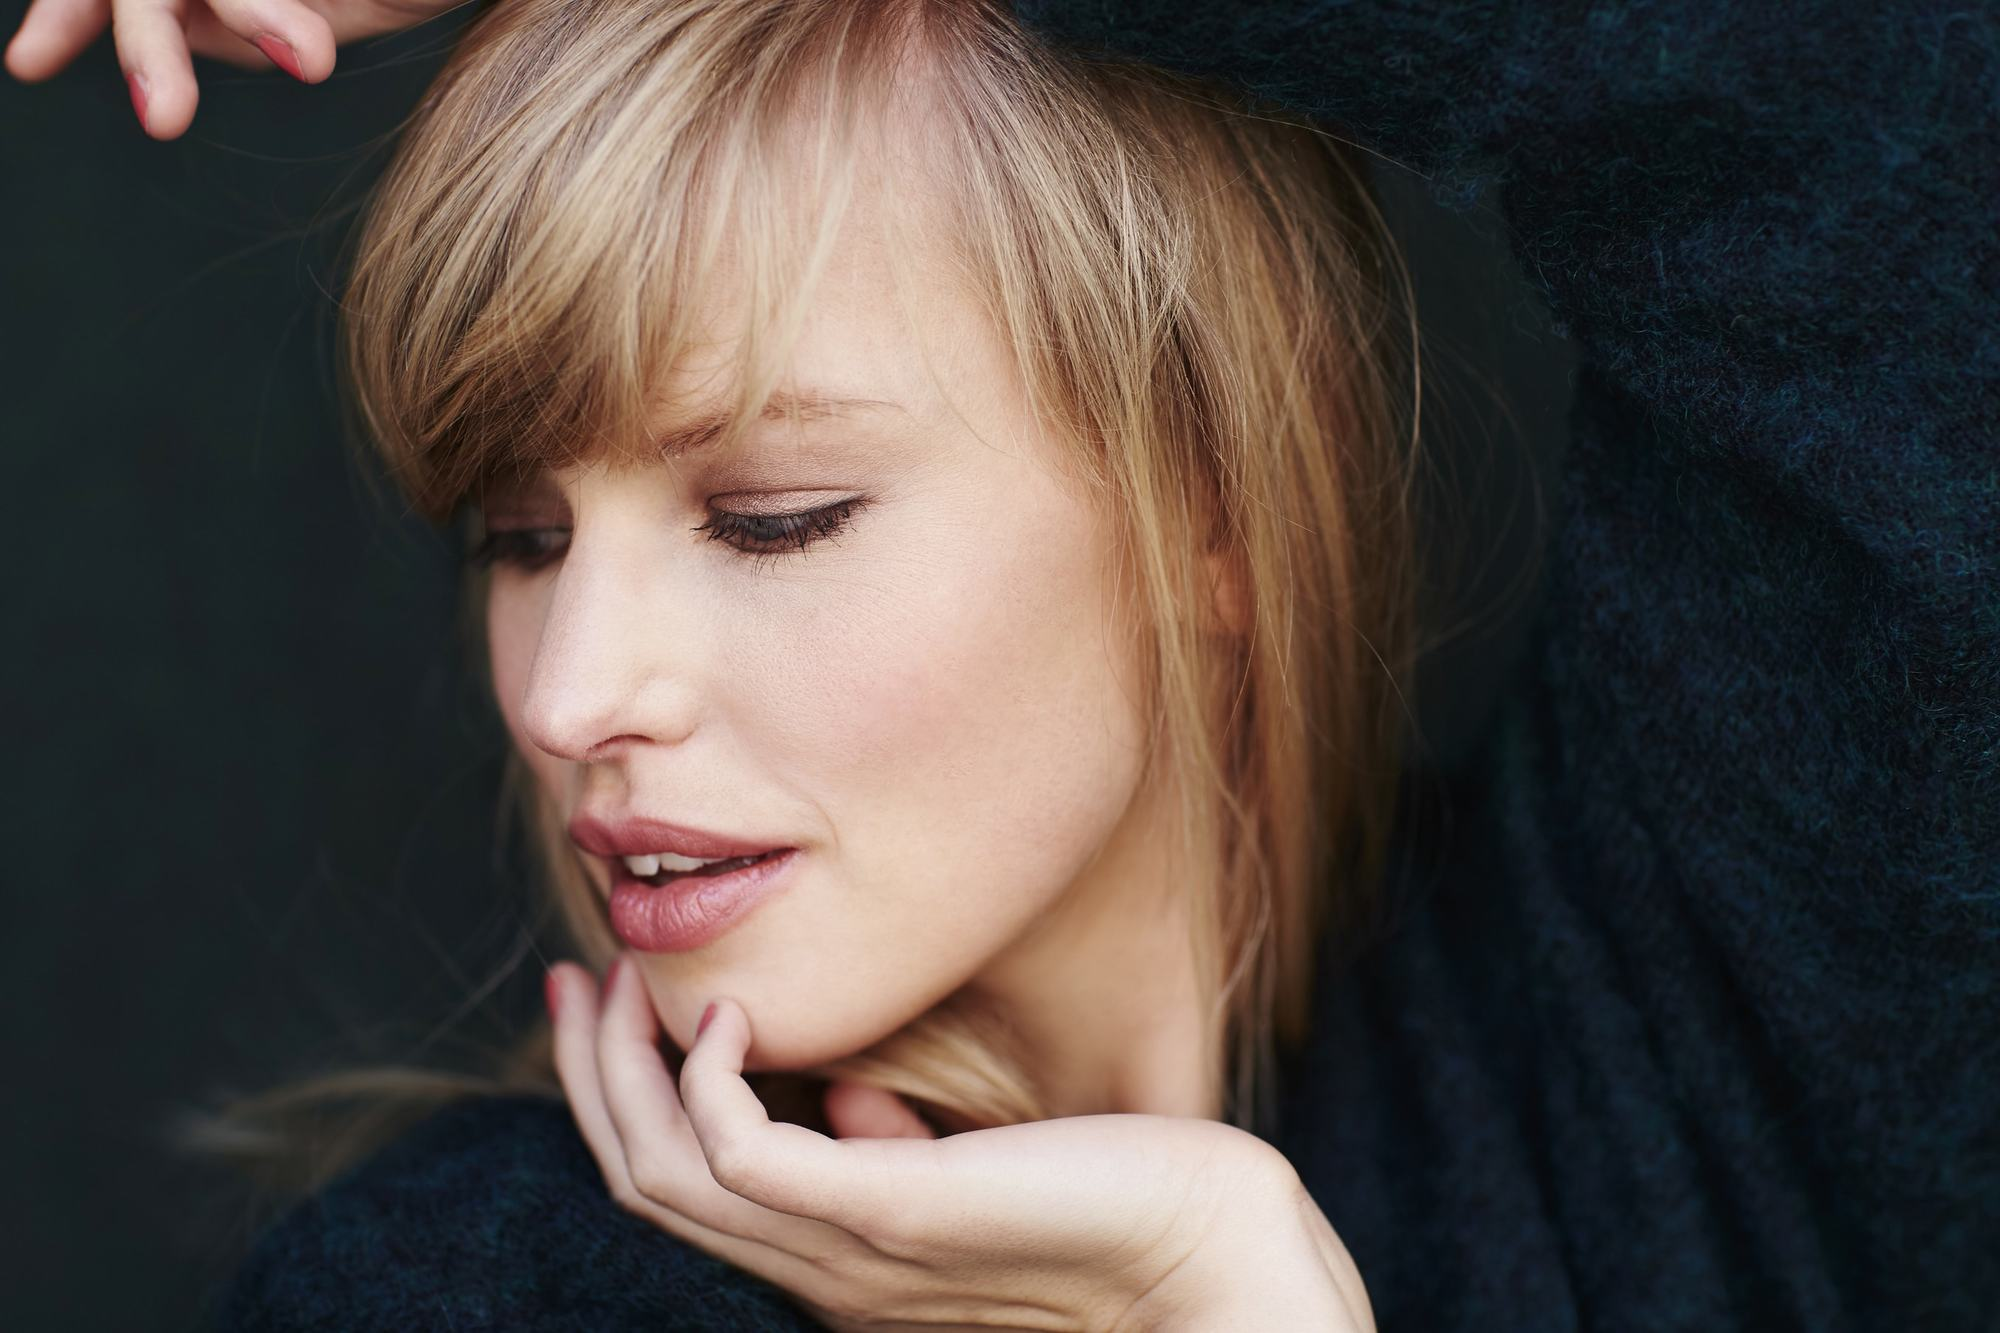 Blonde woman with a fringe hair cut looking down holding her face